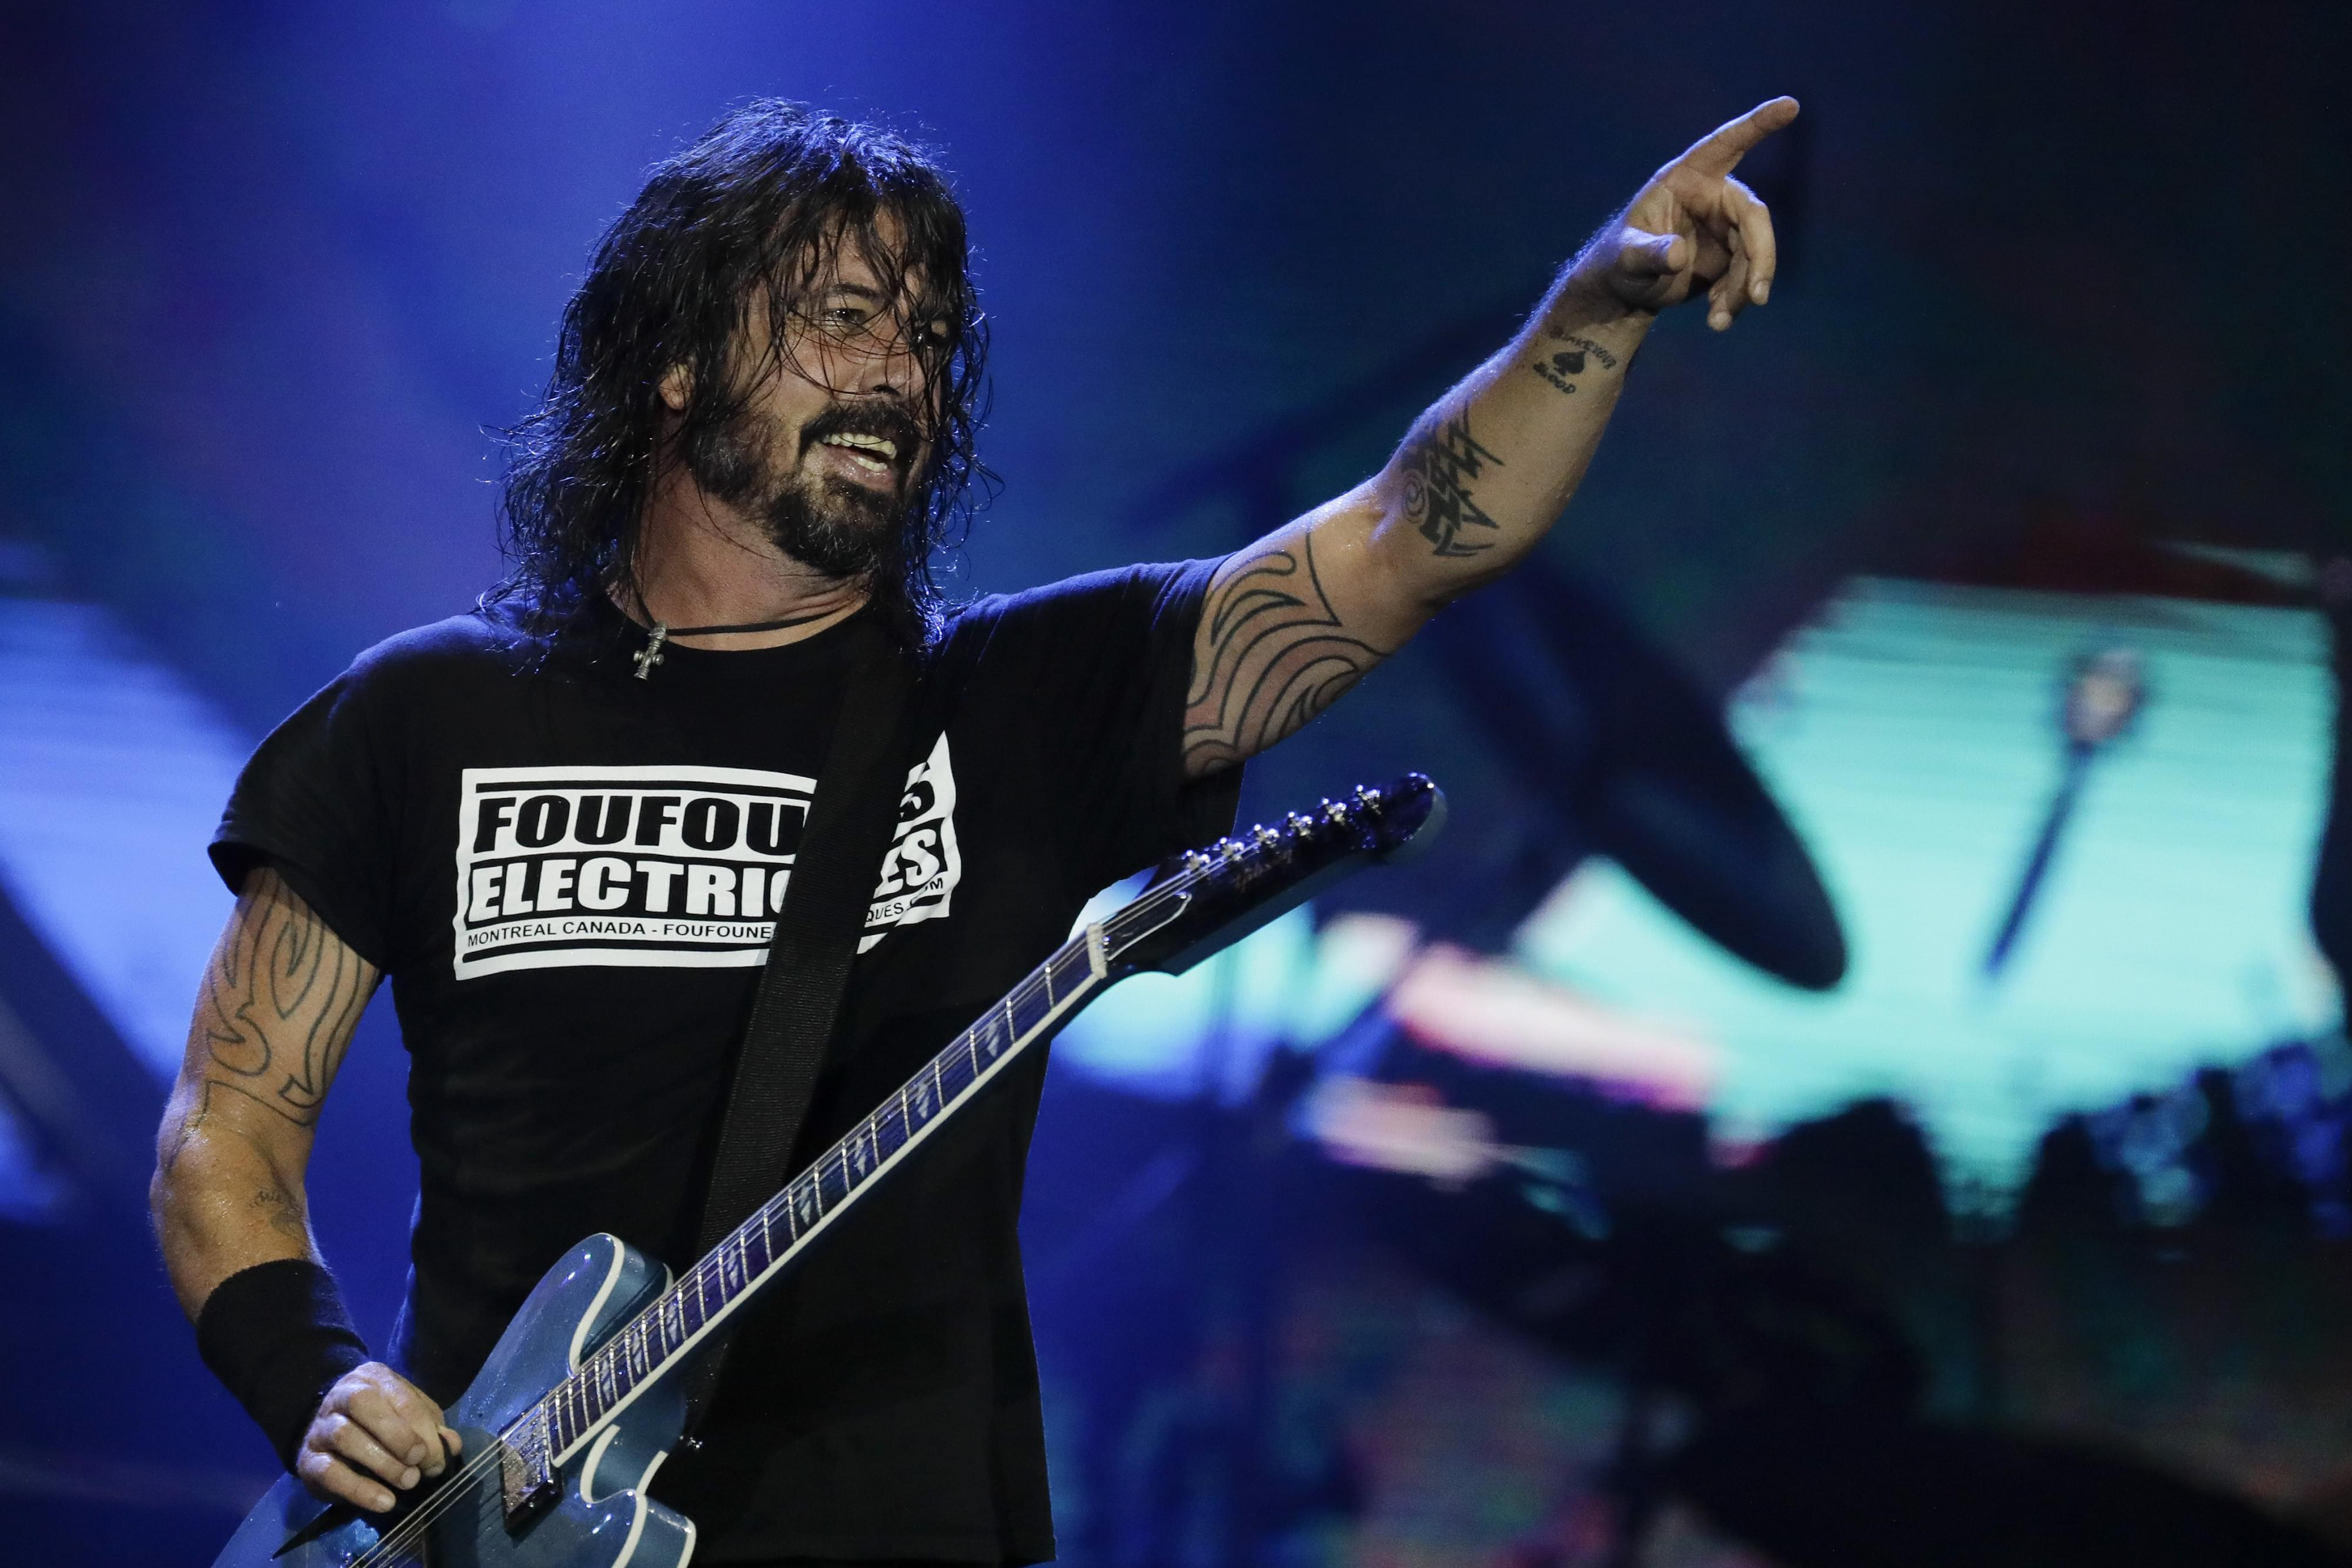 Foo Fighters Announce New Album 'Medicine at Midnight,' and Debut New Song 'Shame Shame' on SNL